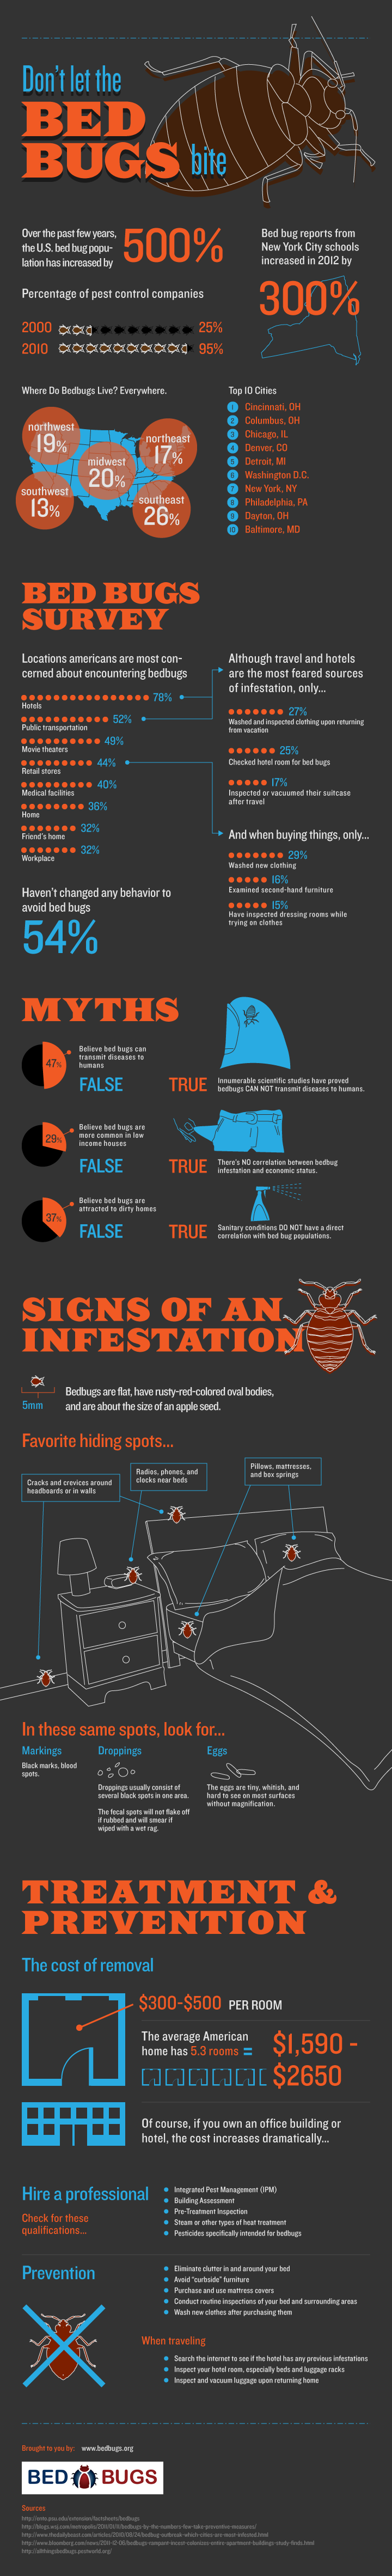 Be aware of bed bugs and how to get rid of them if they